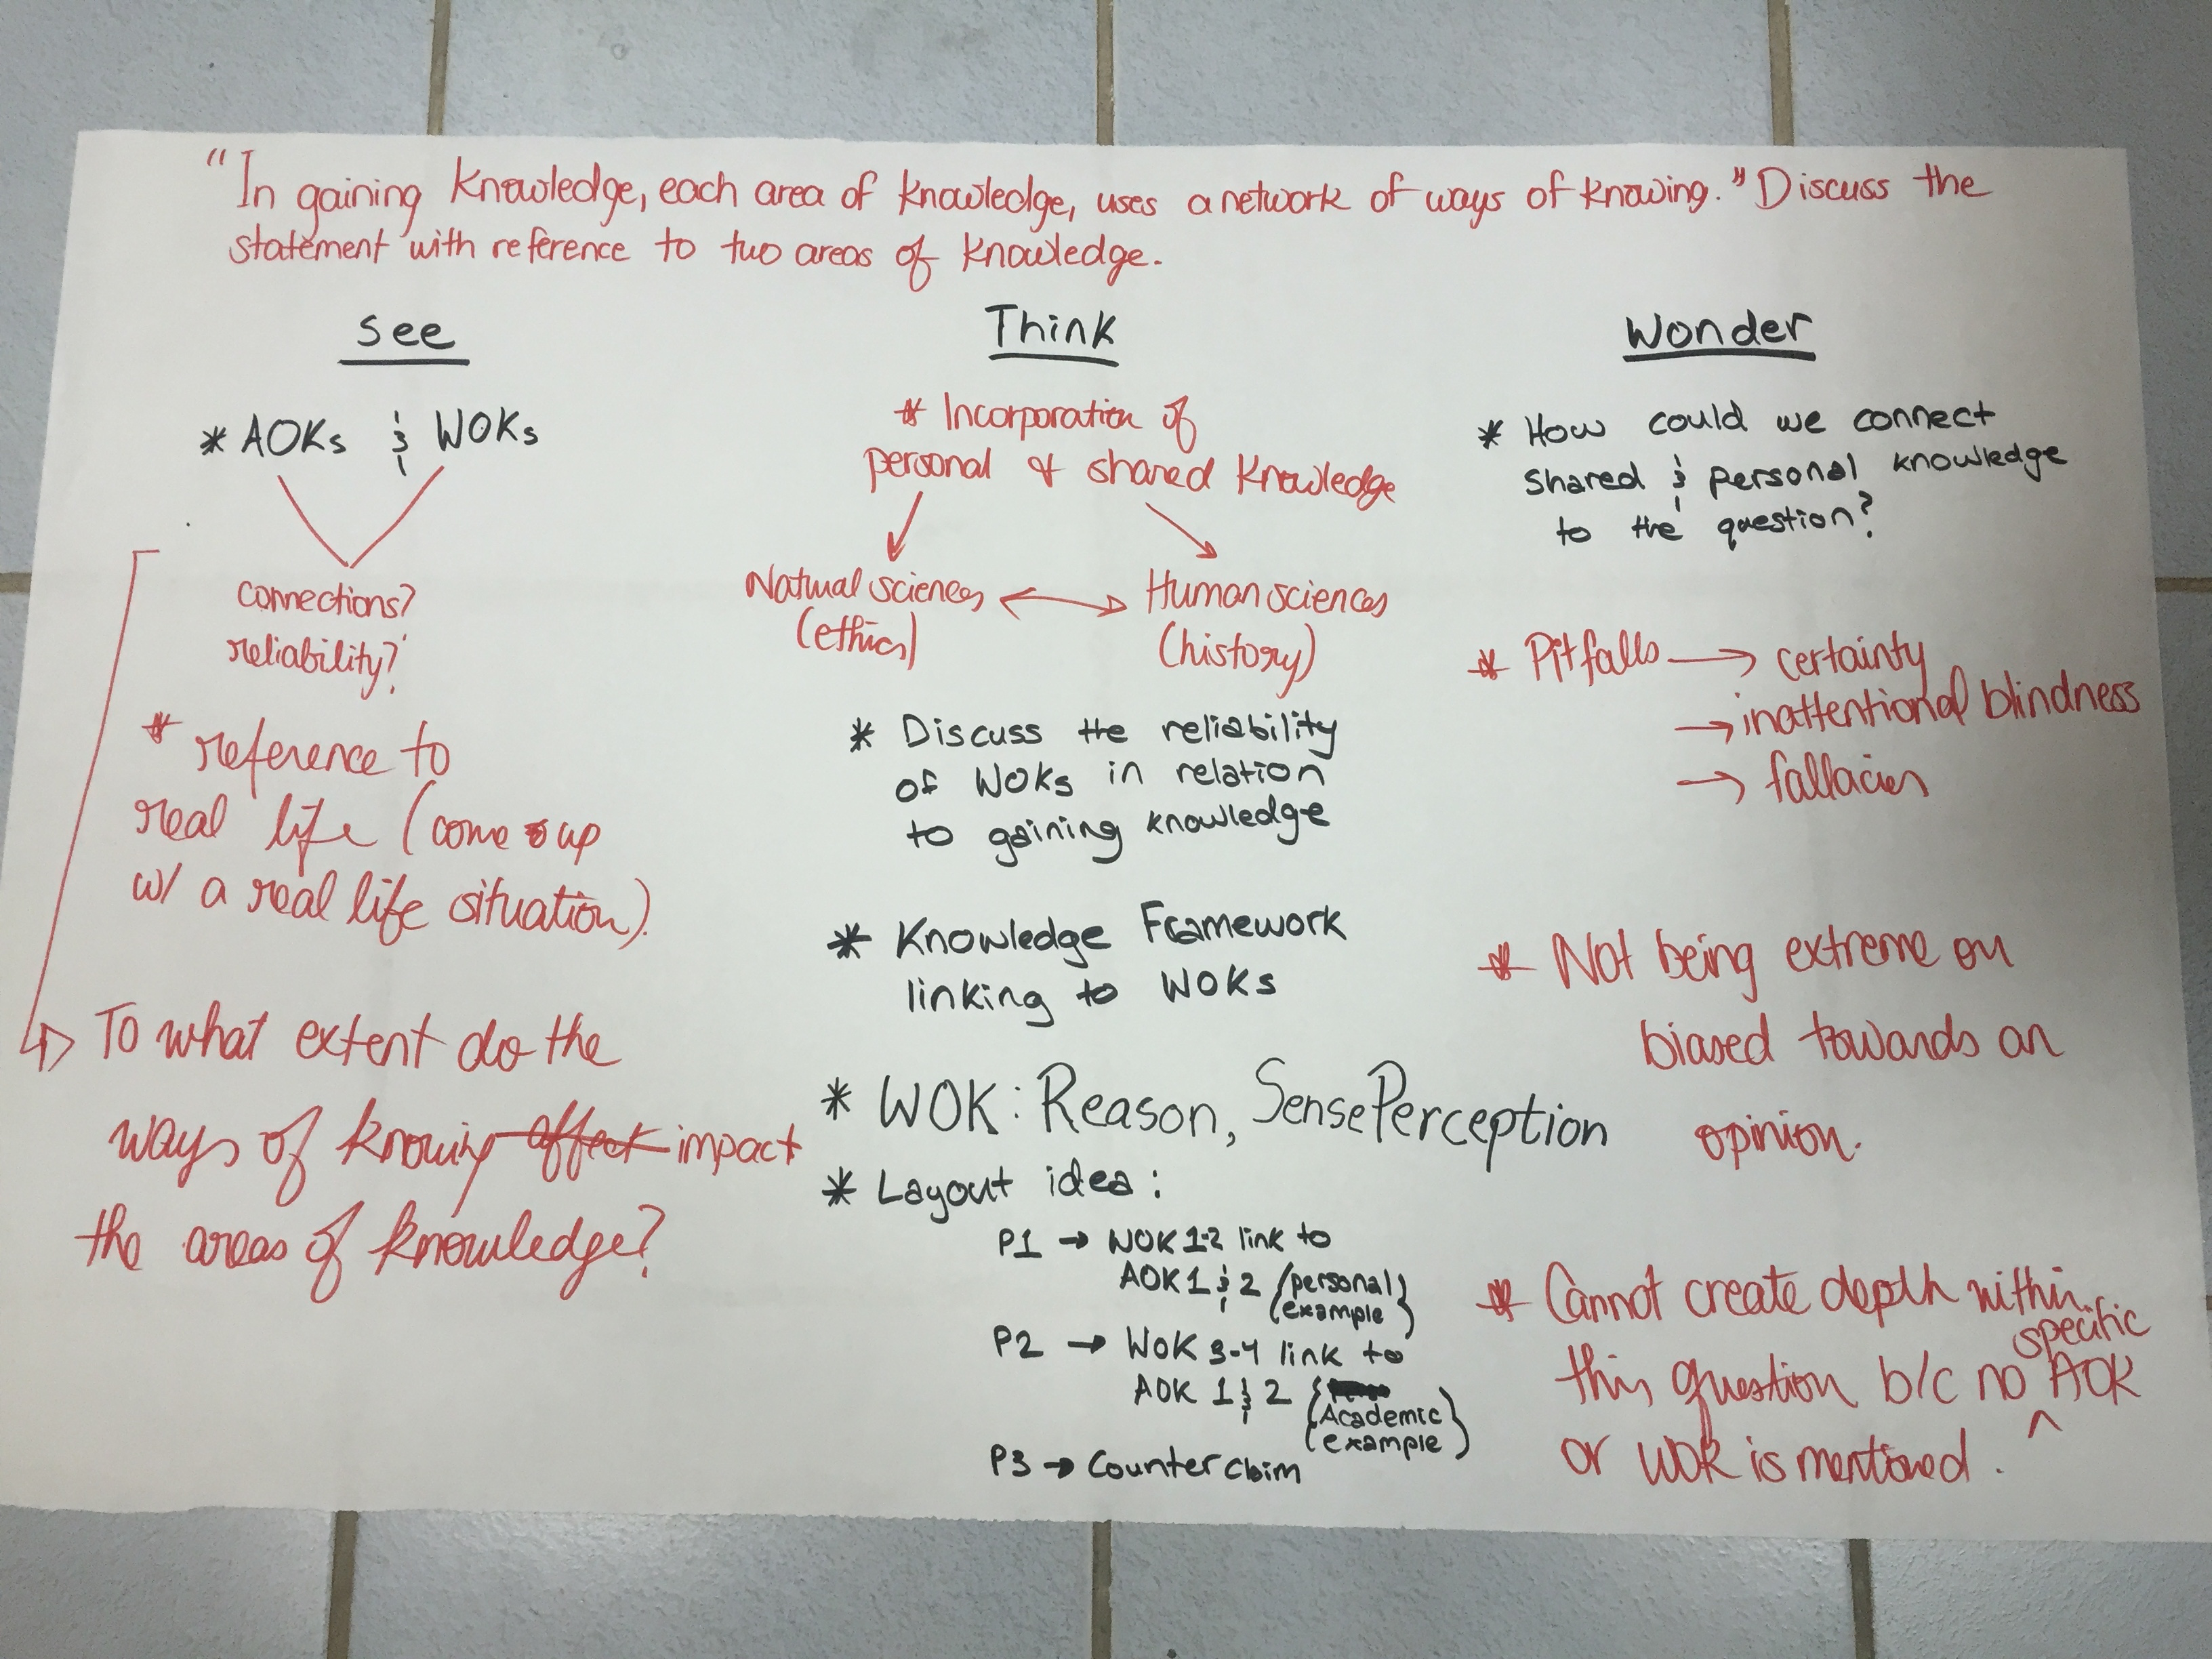 Need help structuring my claim of value essay?